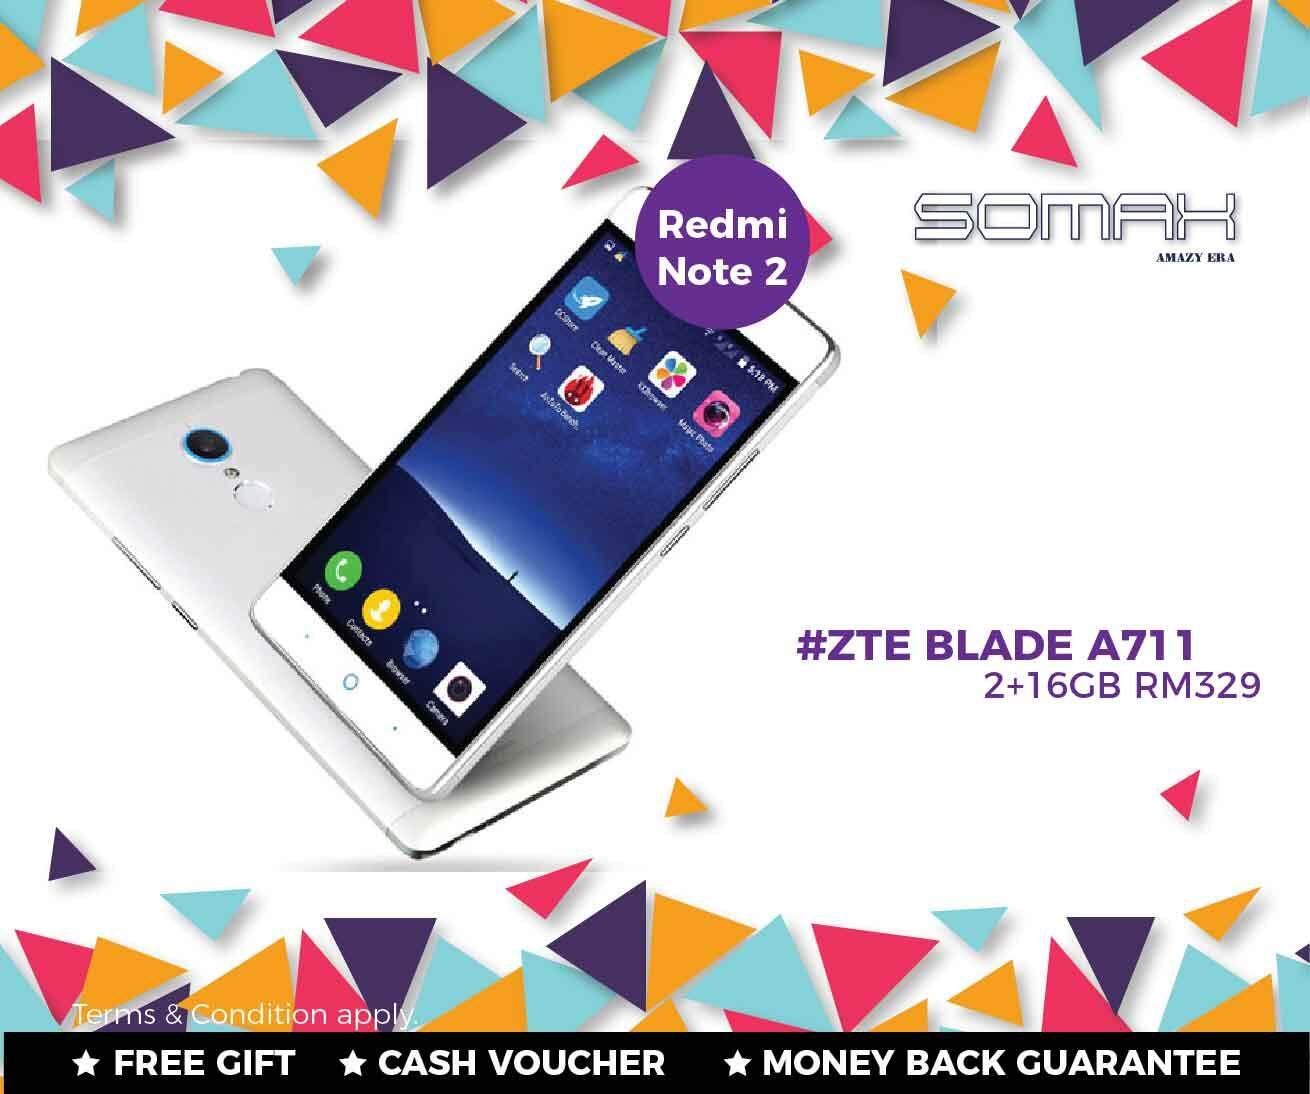 ZTE BLADE A711 X9 * N939SC Snapdragon 615 Octa-Core RM329